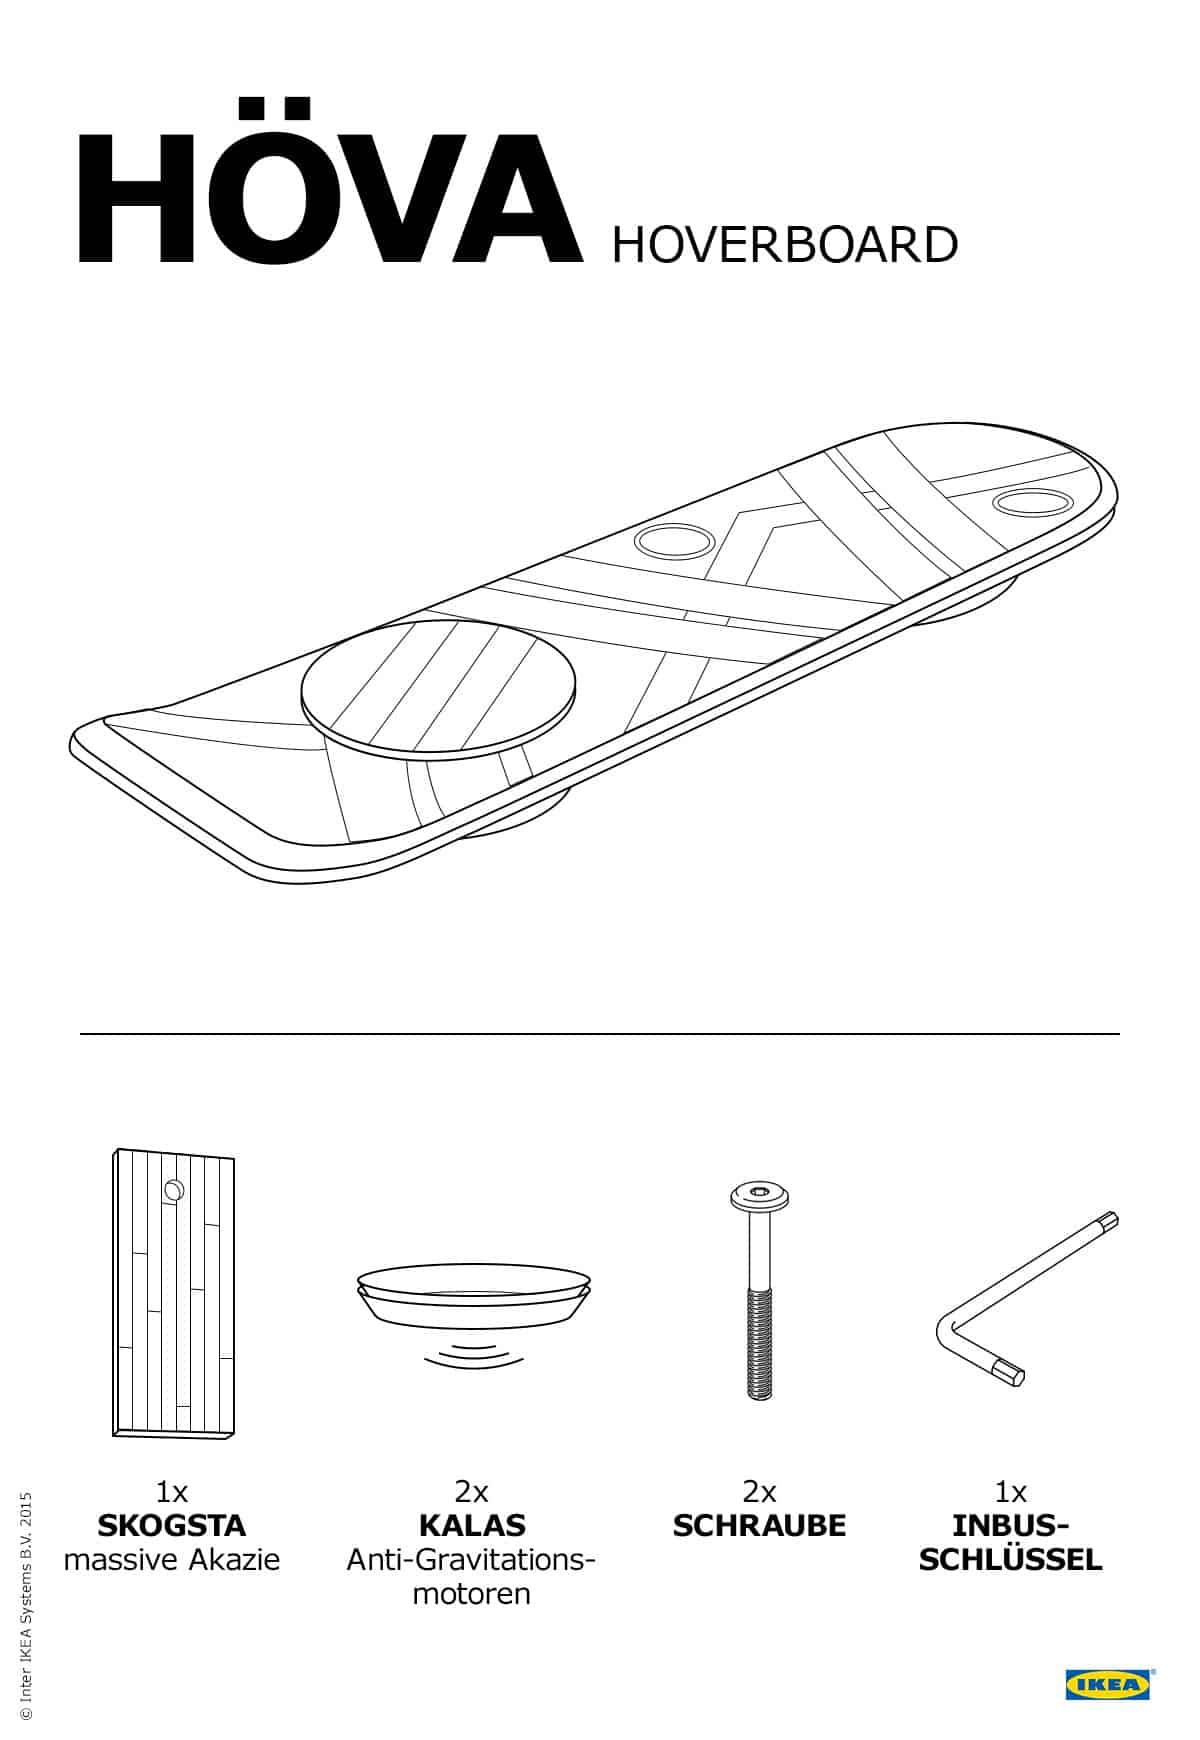 ikea hoverboard h214va dravens tales from the crypt